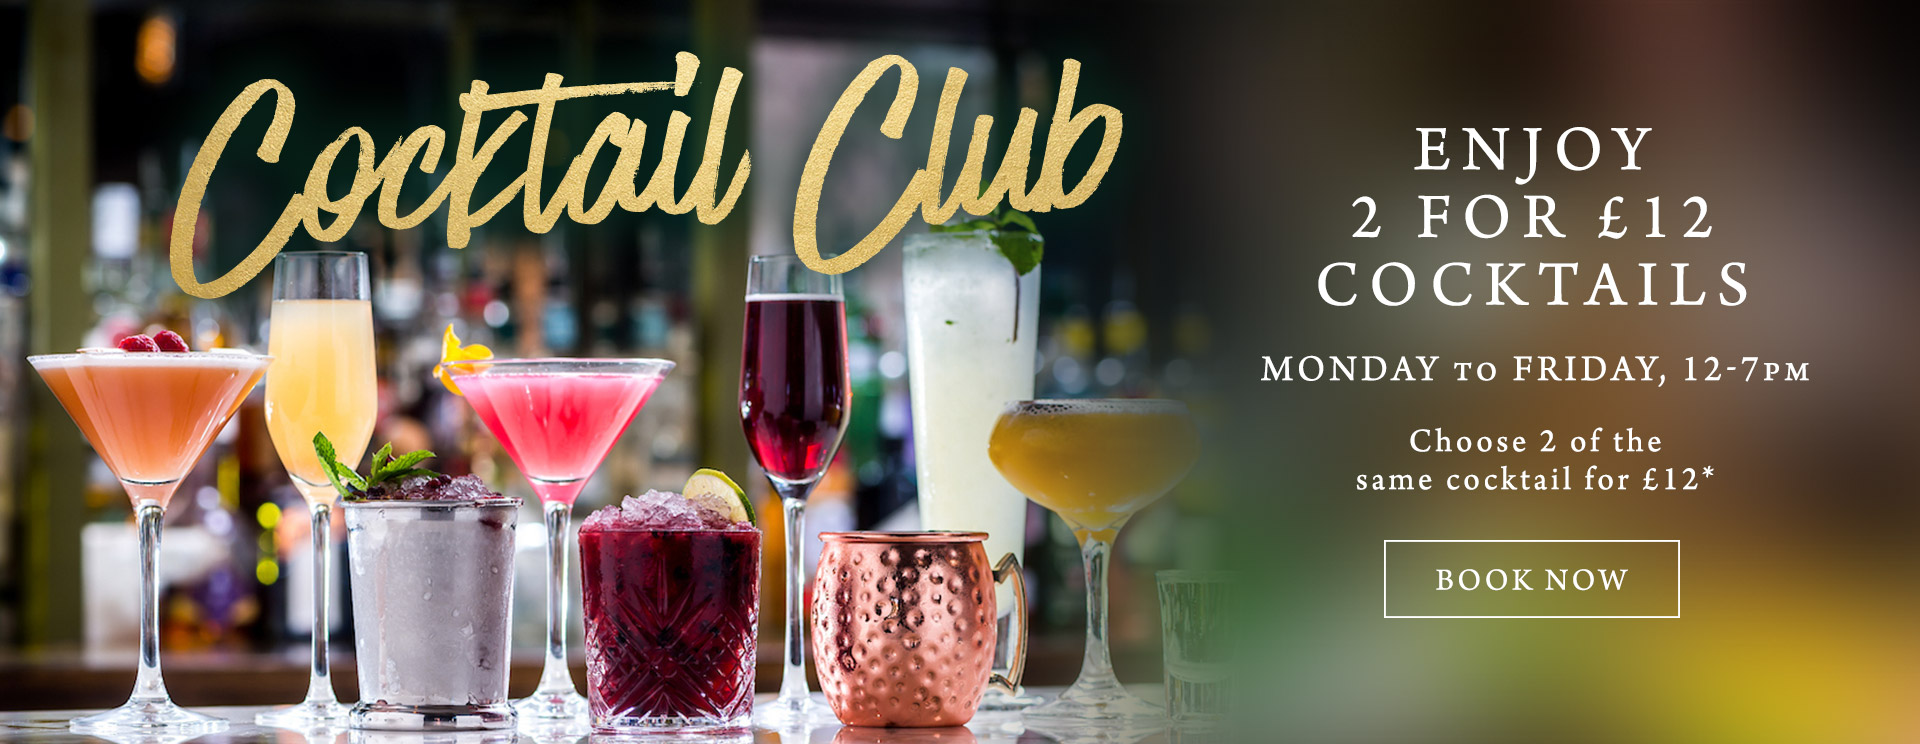 2 for £12 cocktails at Nags Head Inn Woking